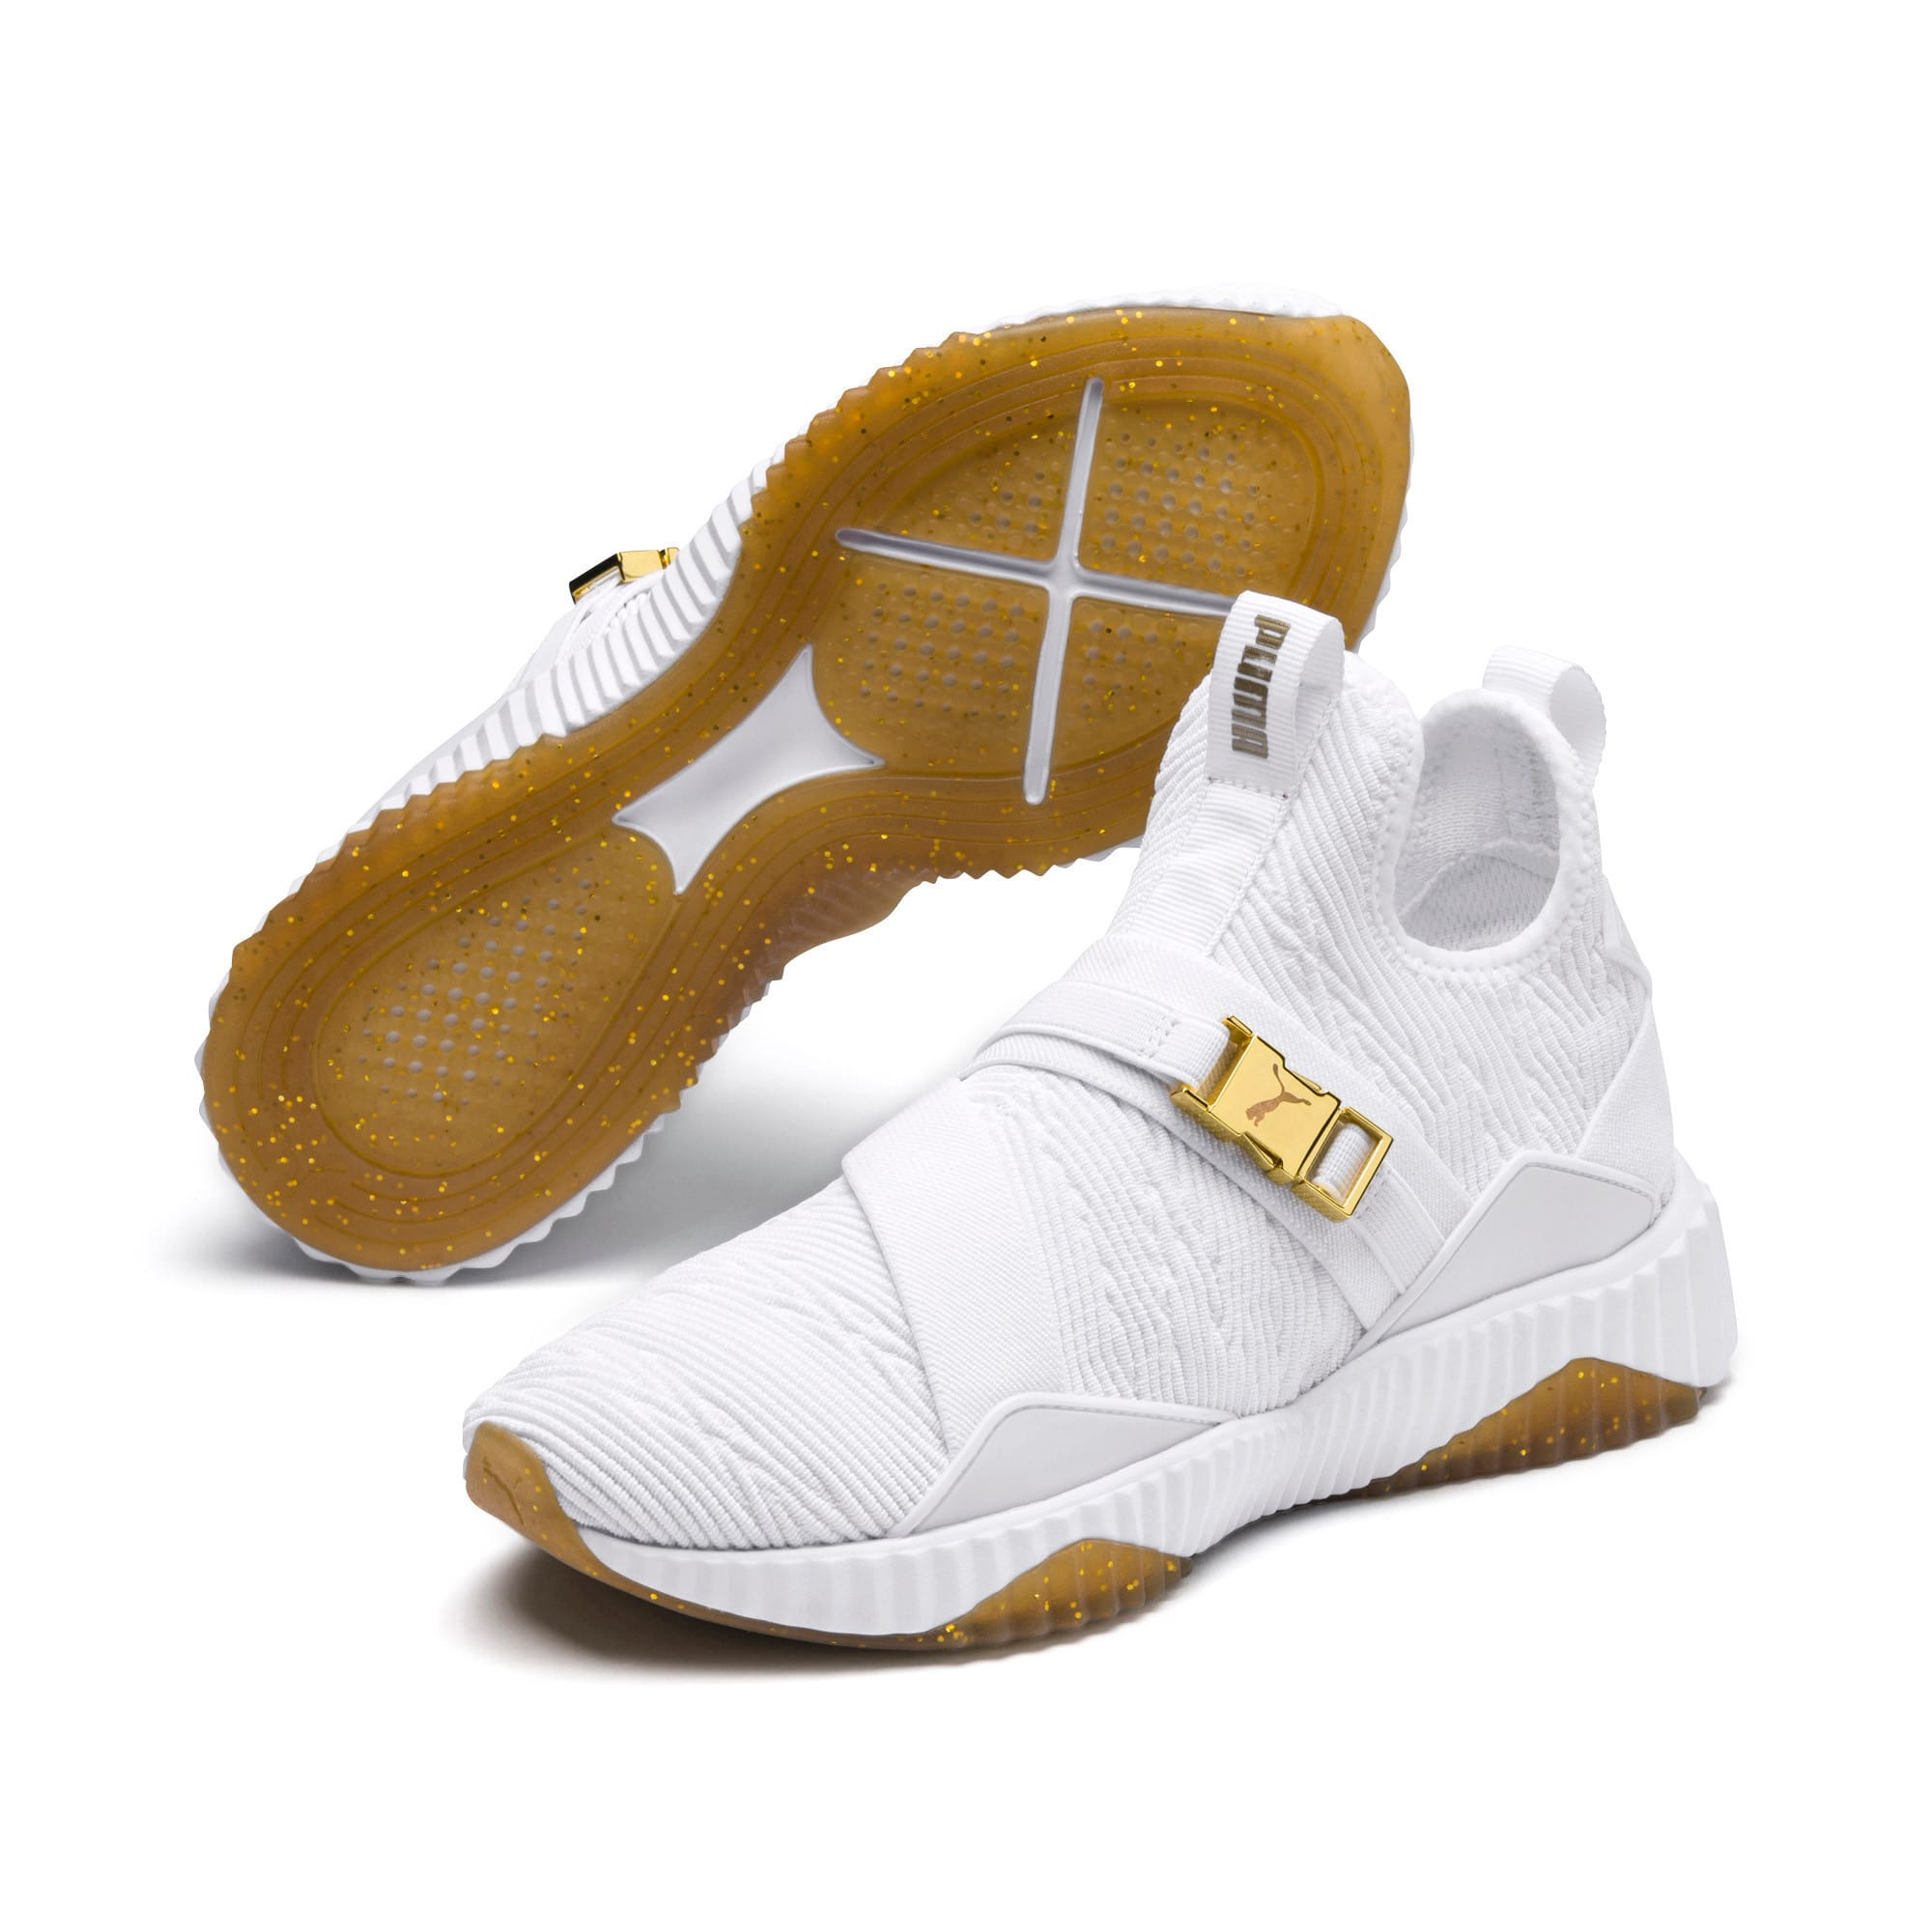 Thumbnail 7 of Defy Varsity Mid Women's Trainers, Puma White-Metallic Gold, medium-IND